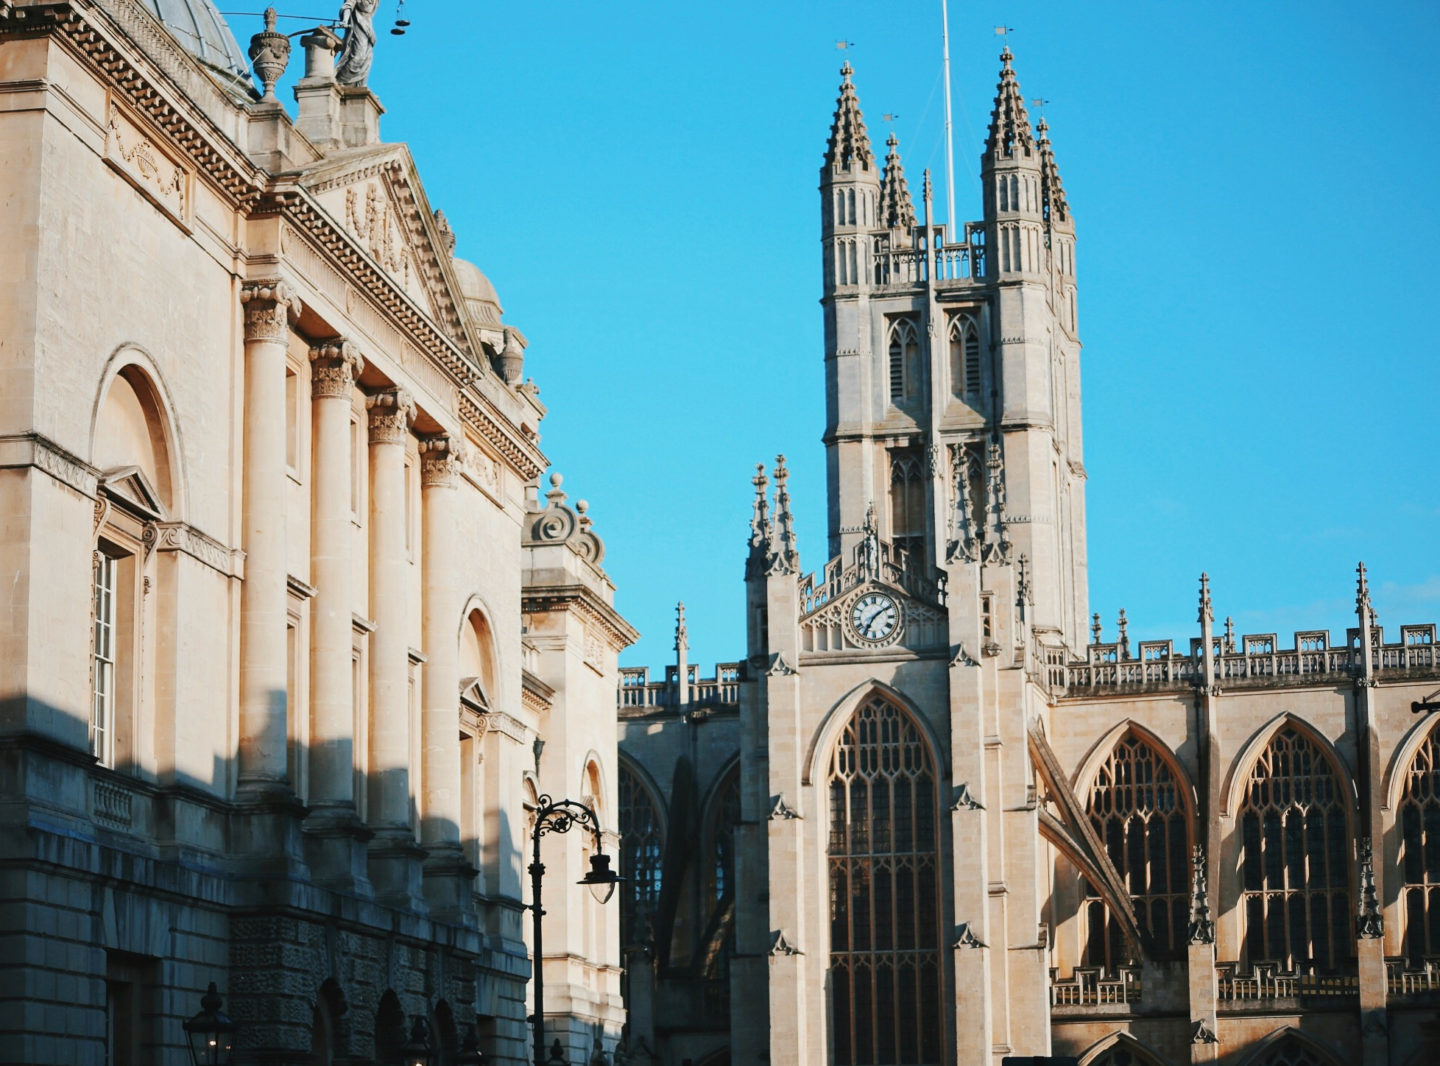 How to spend an awesome long weekend in Bath